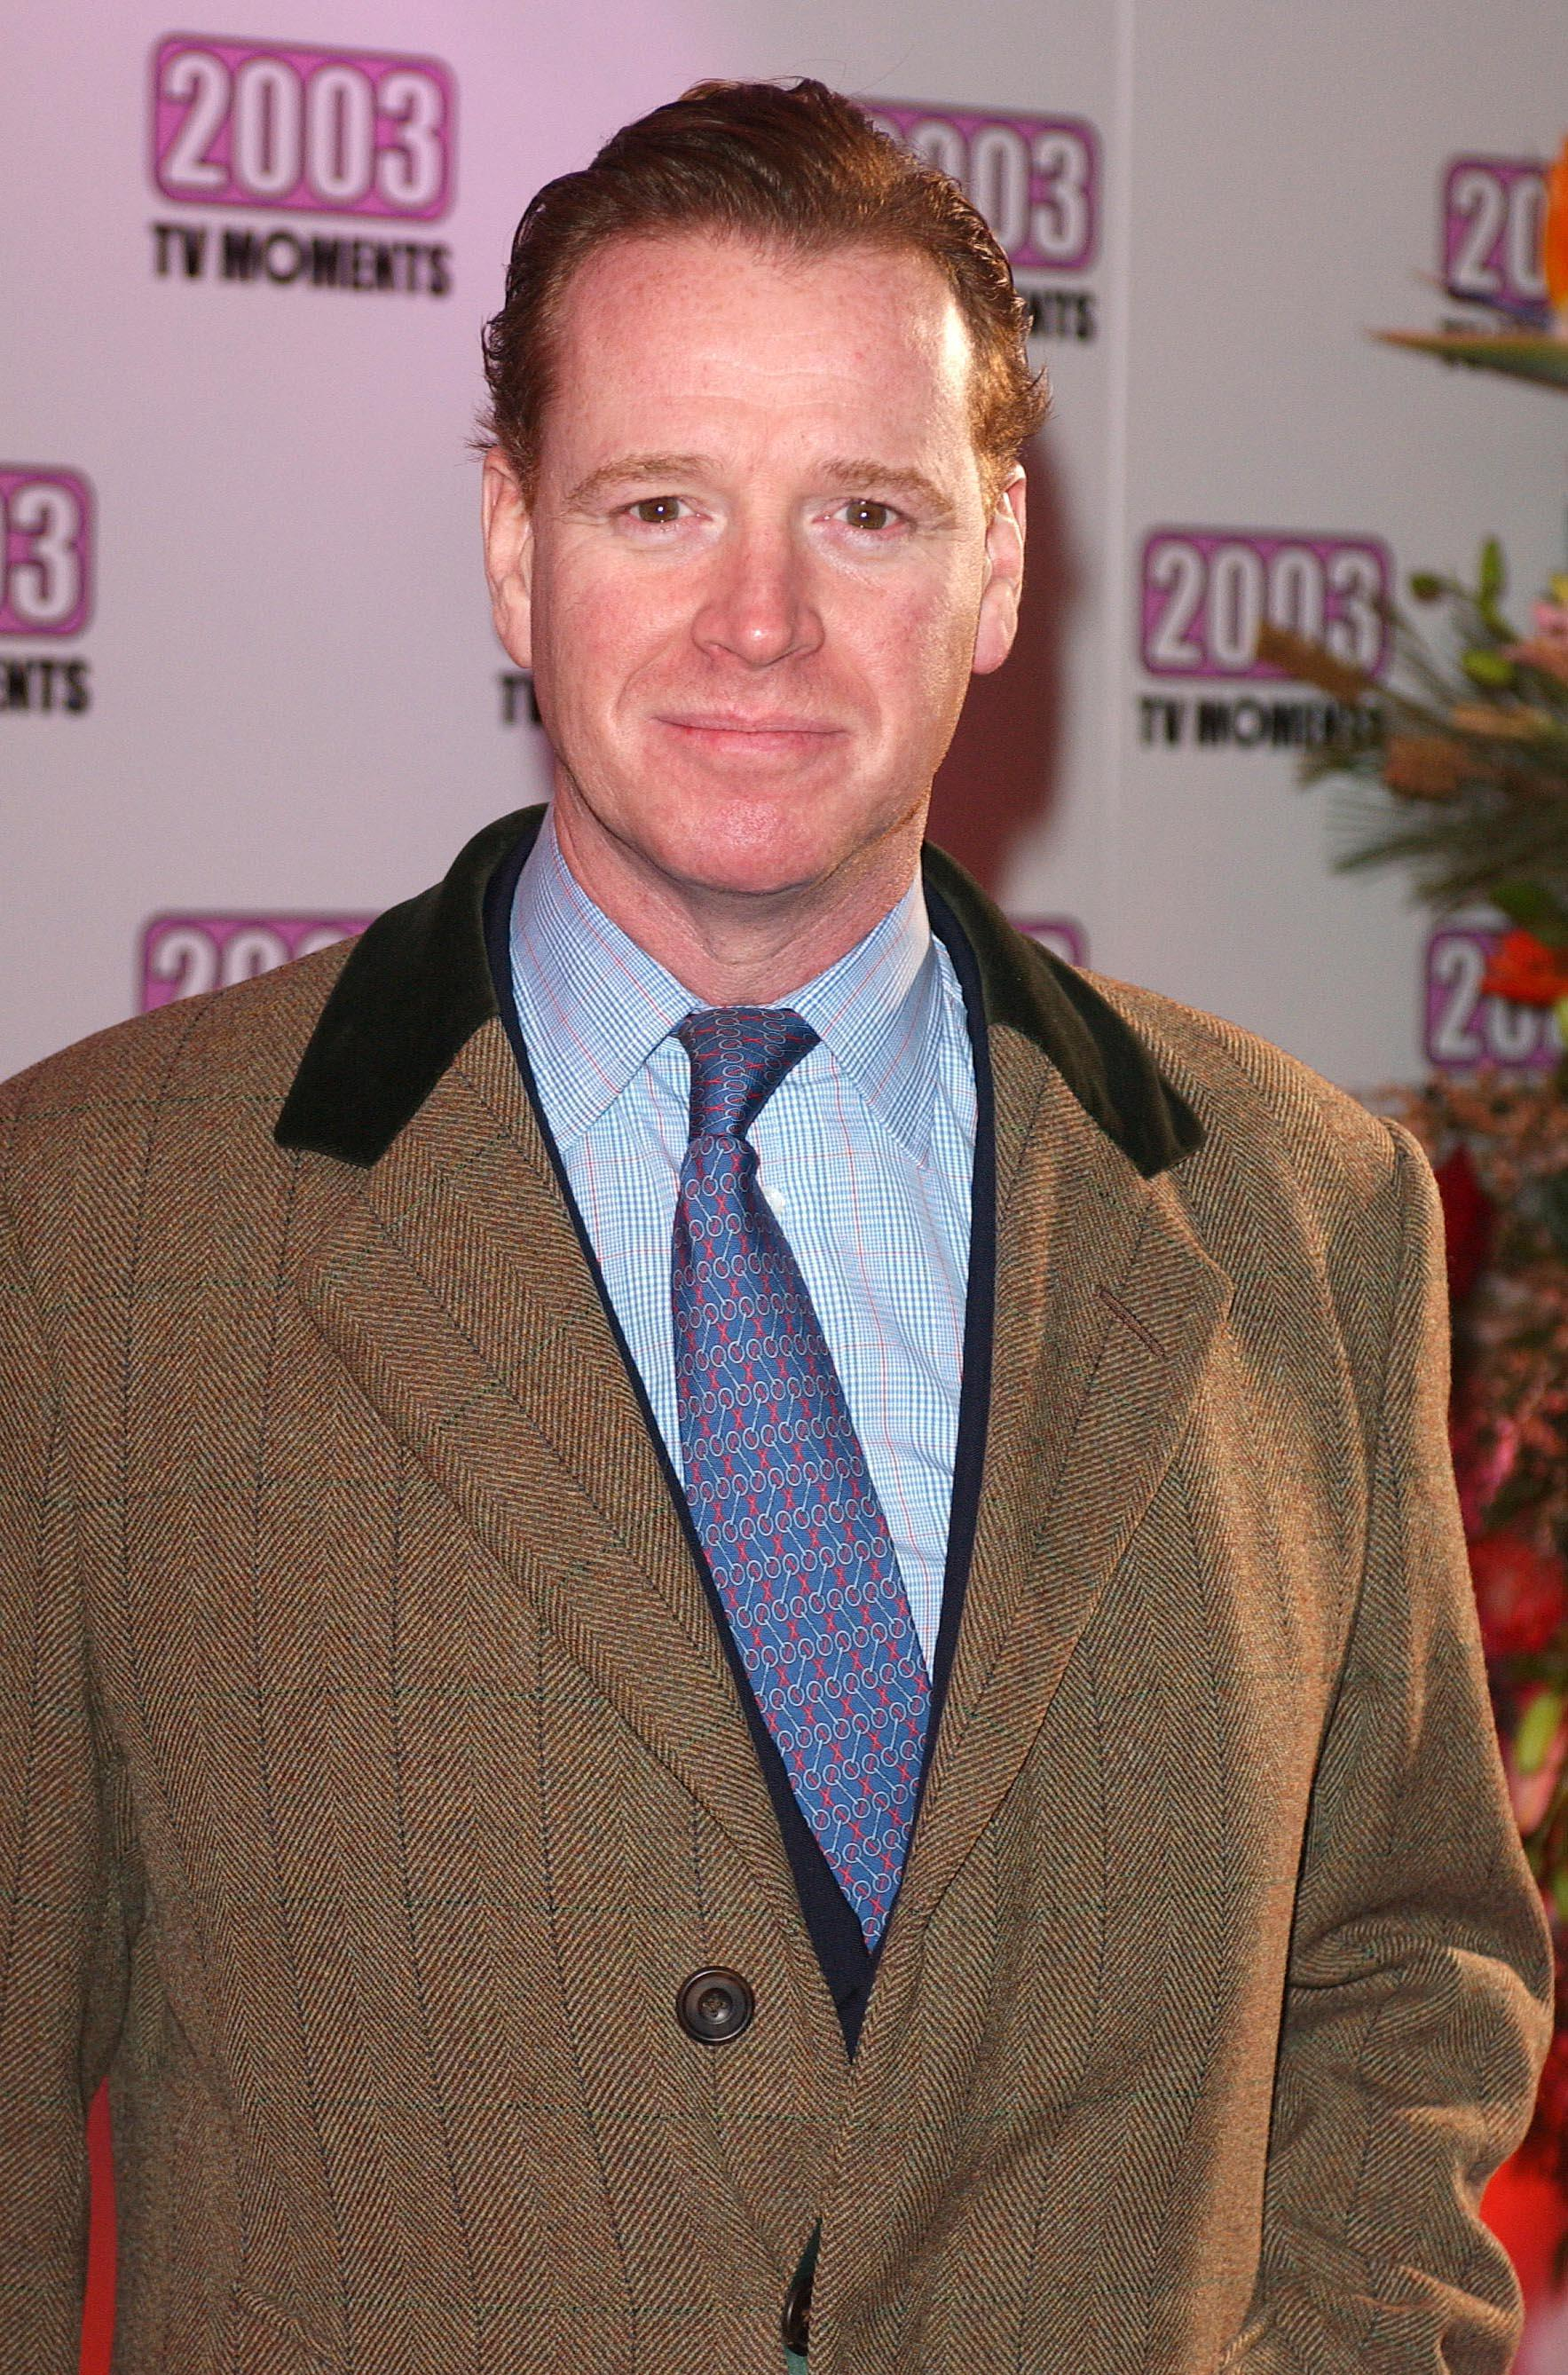 Prince harry's biological father